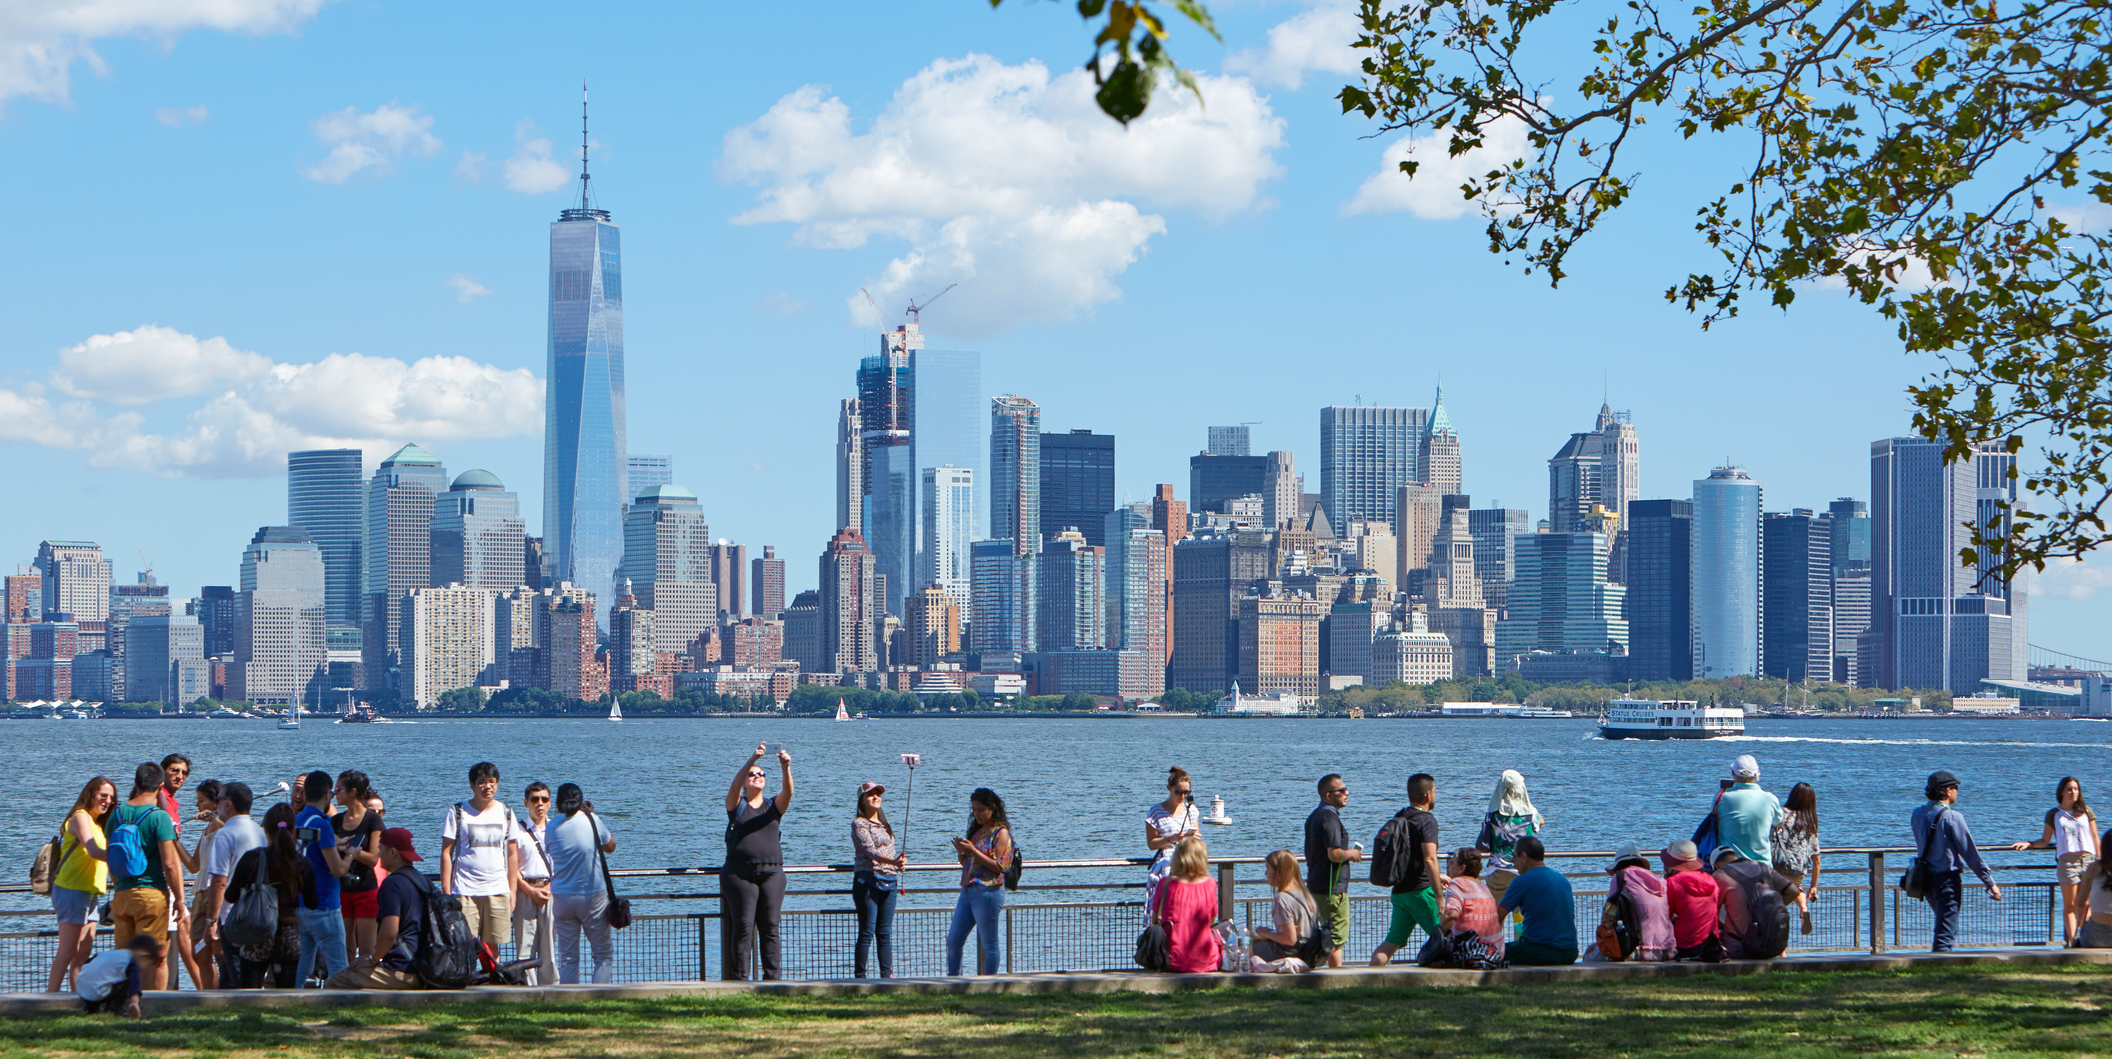 People And Tourists Shooting Selfies And Looking At New York City Skyline In A Sunny Day On In New York